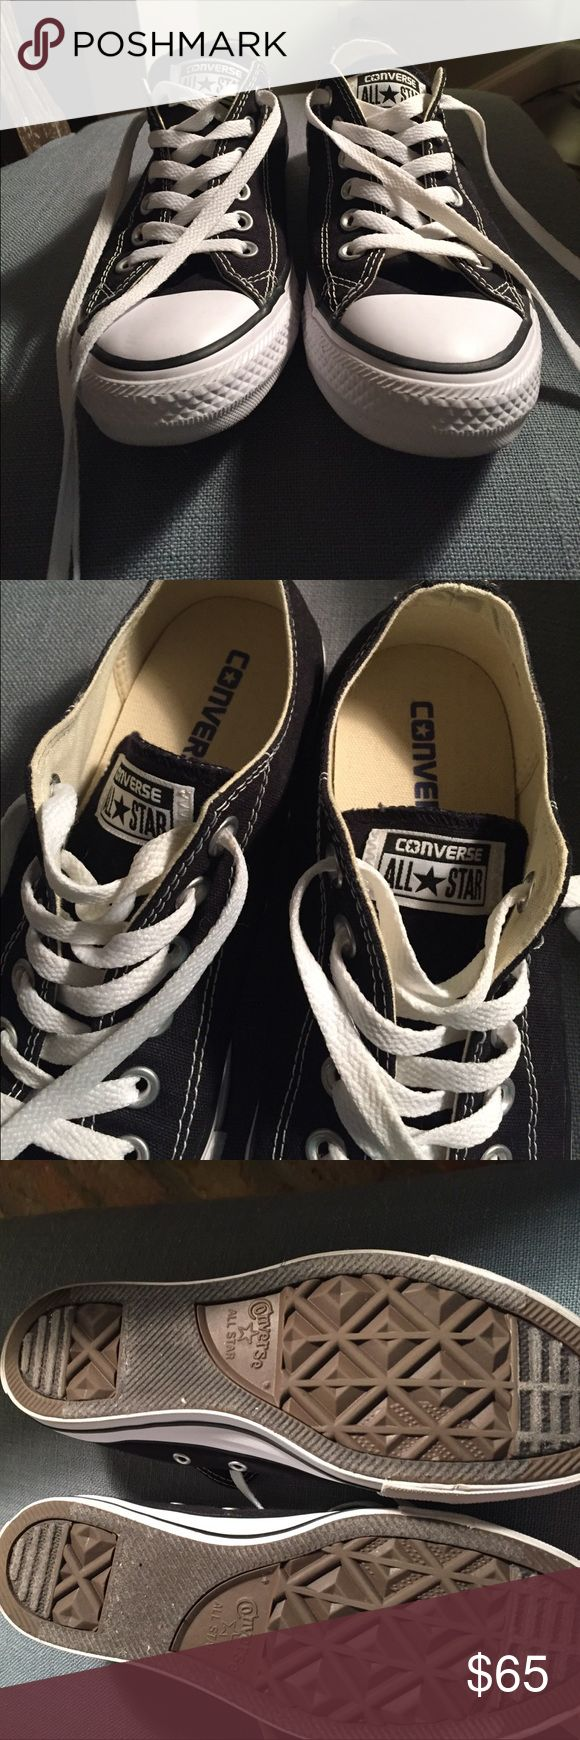 Brand New without Tags! Converse Black size 7.5 Brand new! 7.5 Black converse Converse Shoes Sneakers